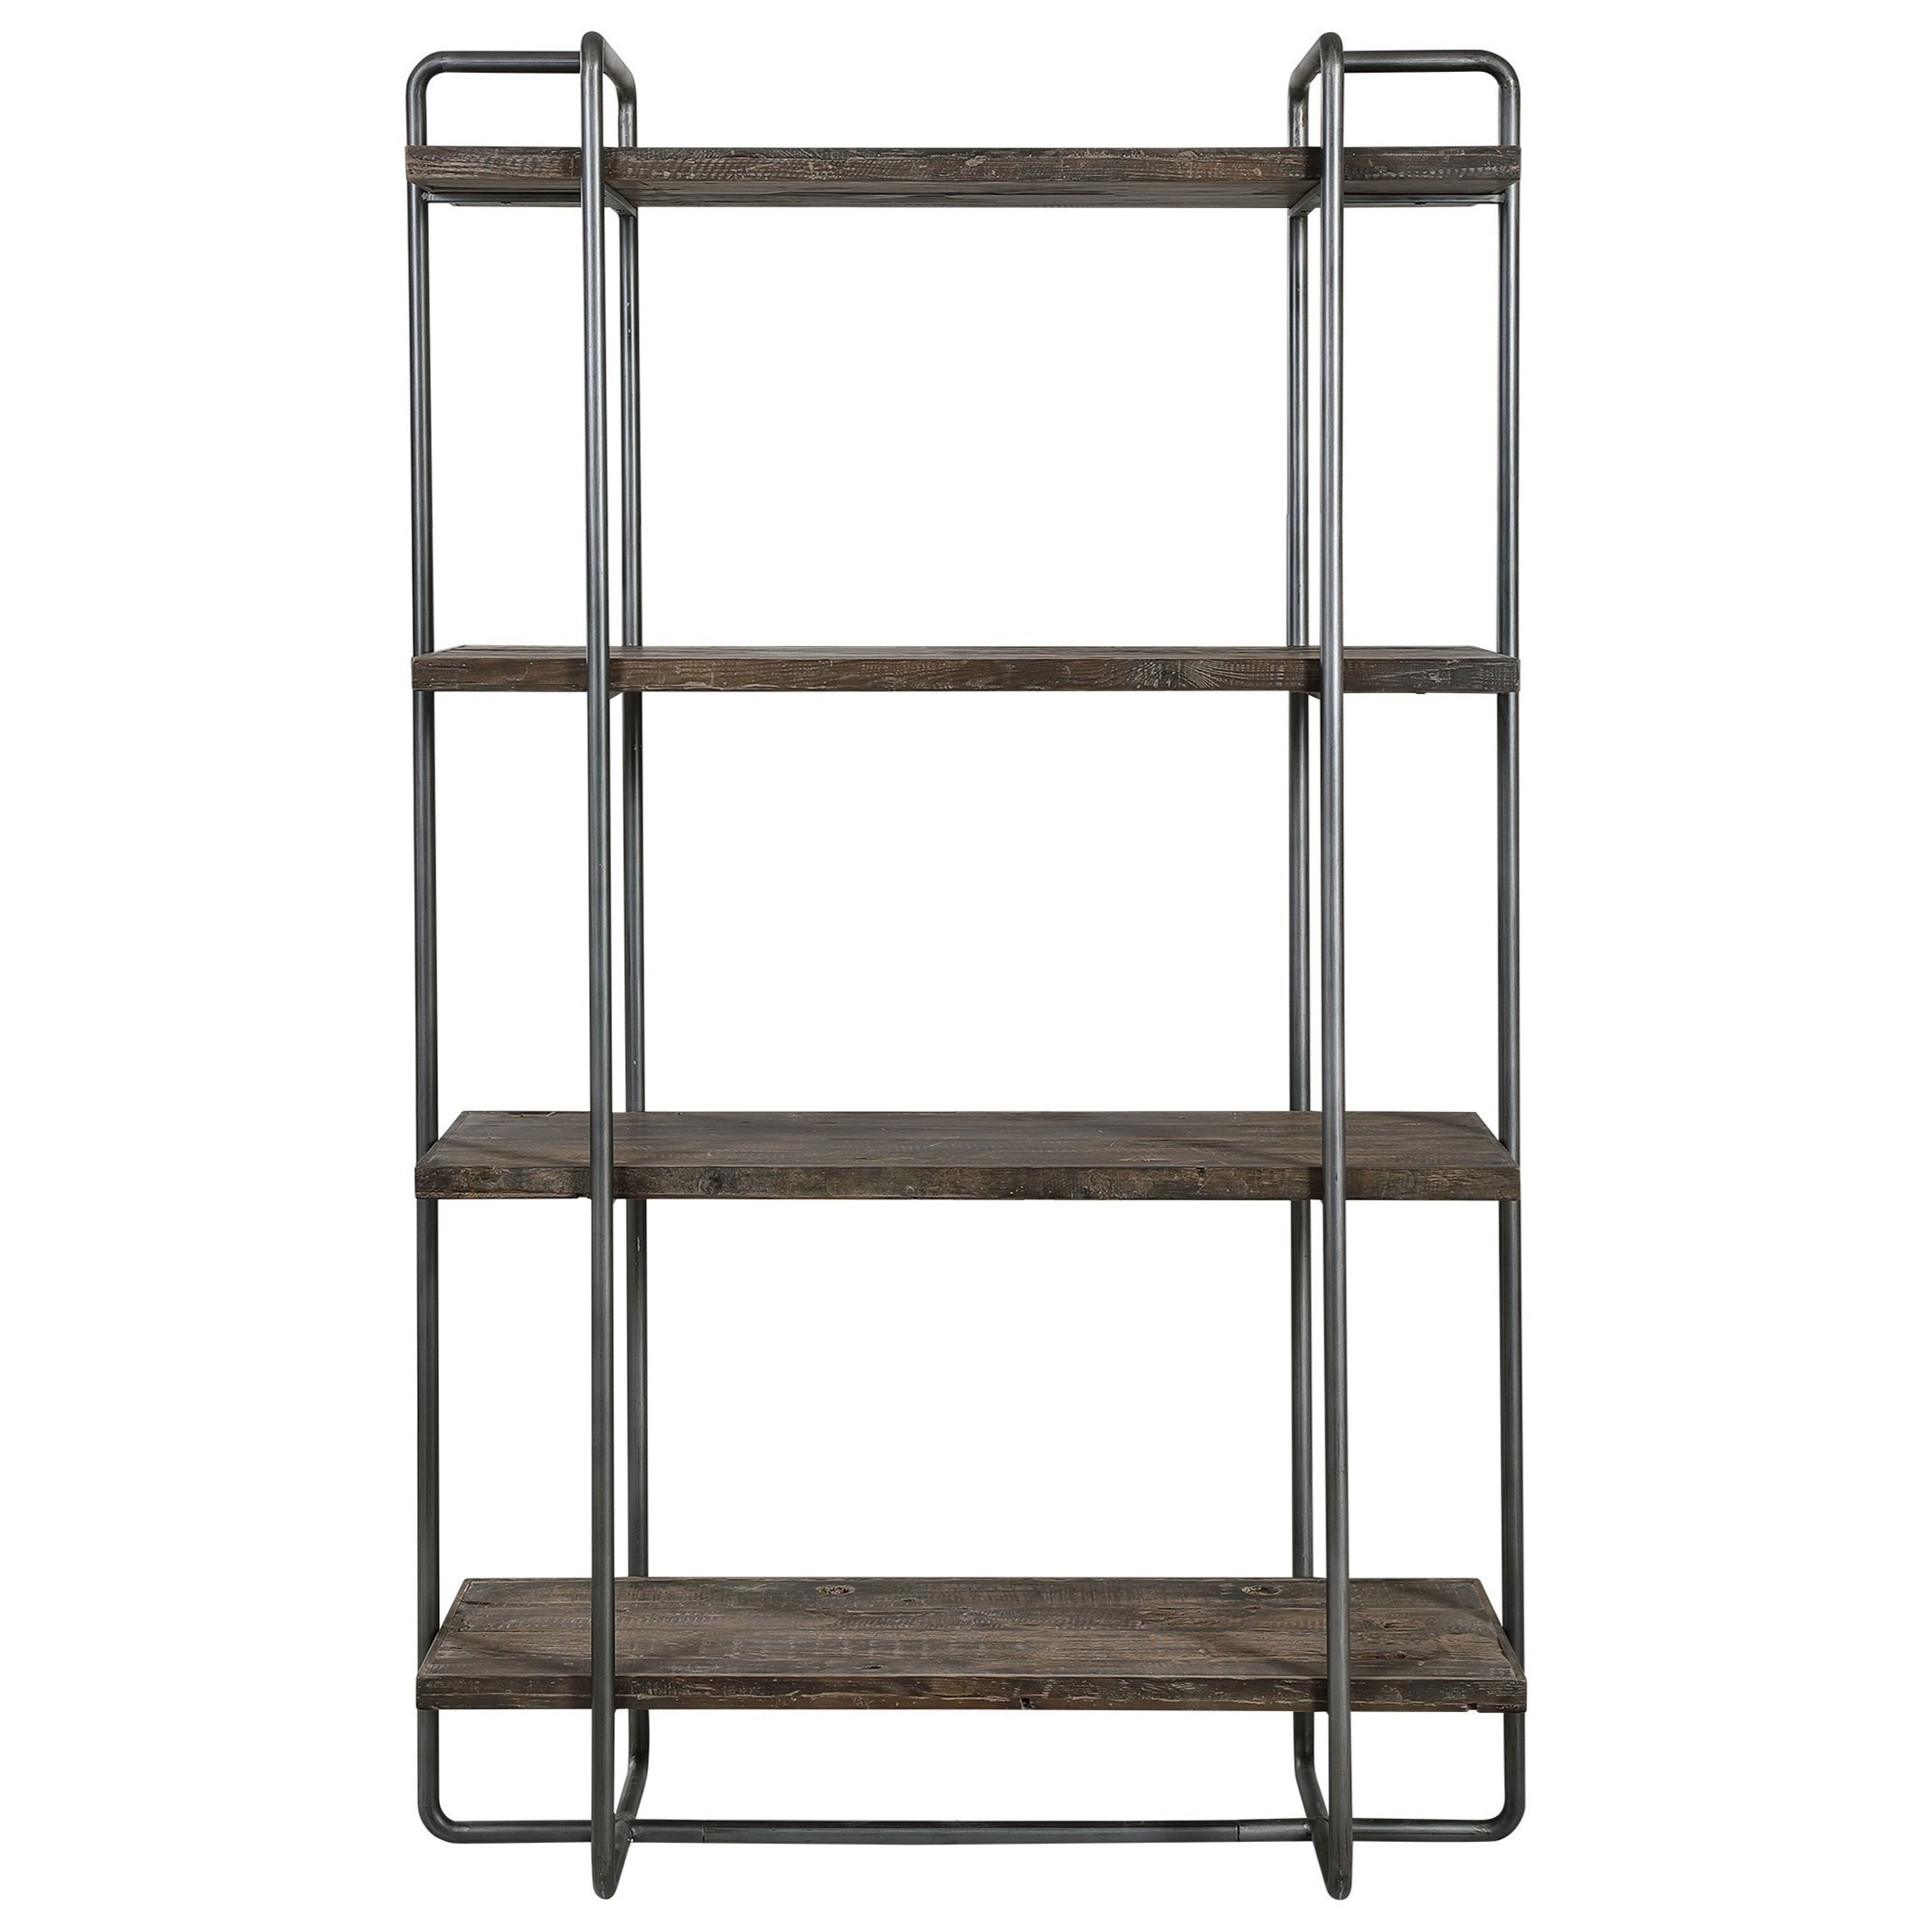 Accent Furniture - Bookcases Stilo Urban Industrial Etagere by Uttermost at Upper Room Home Furnishings